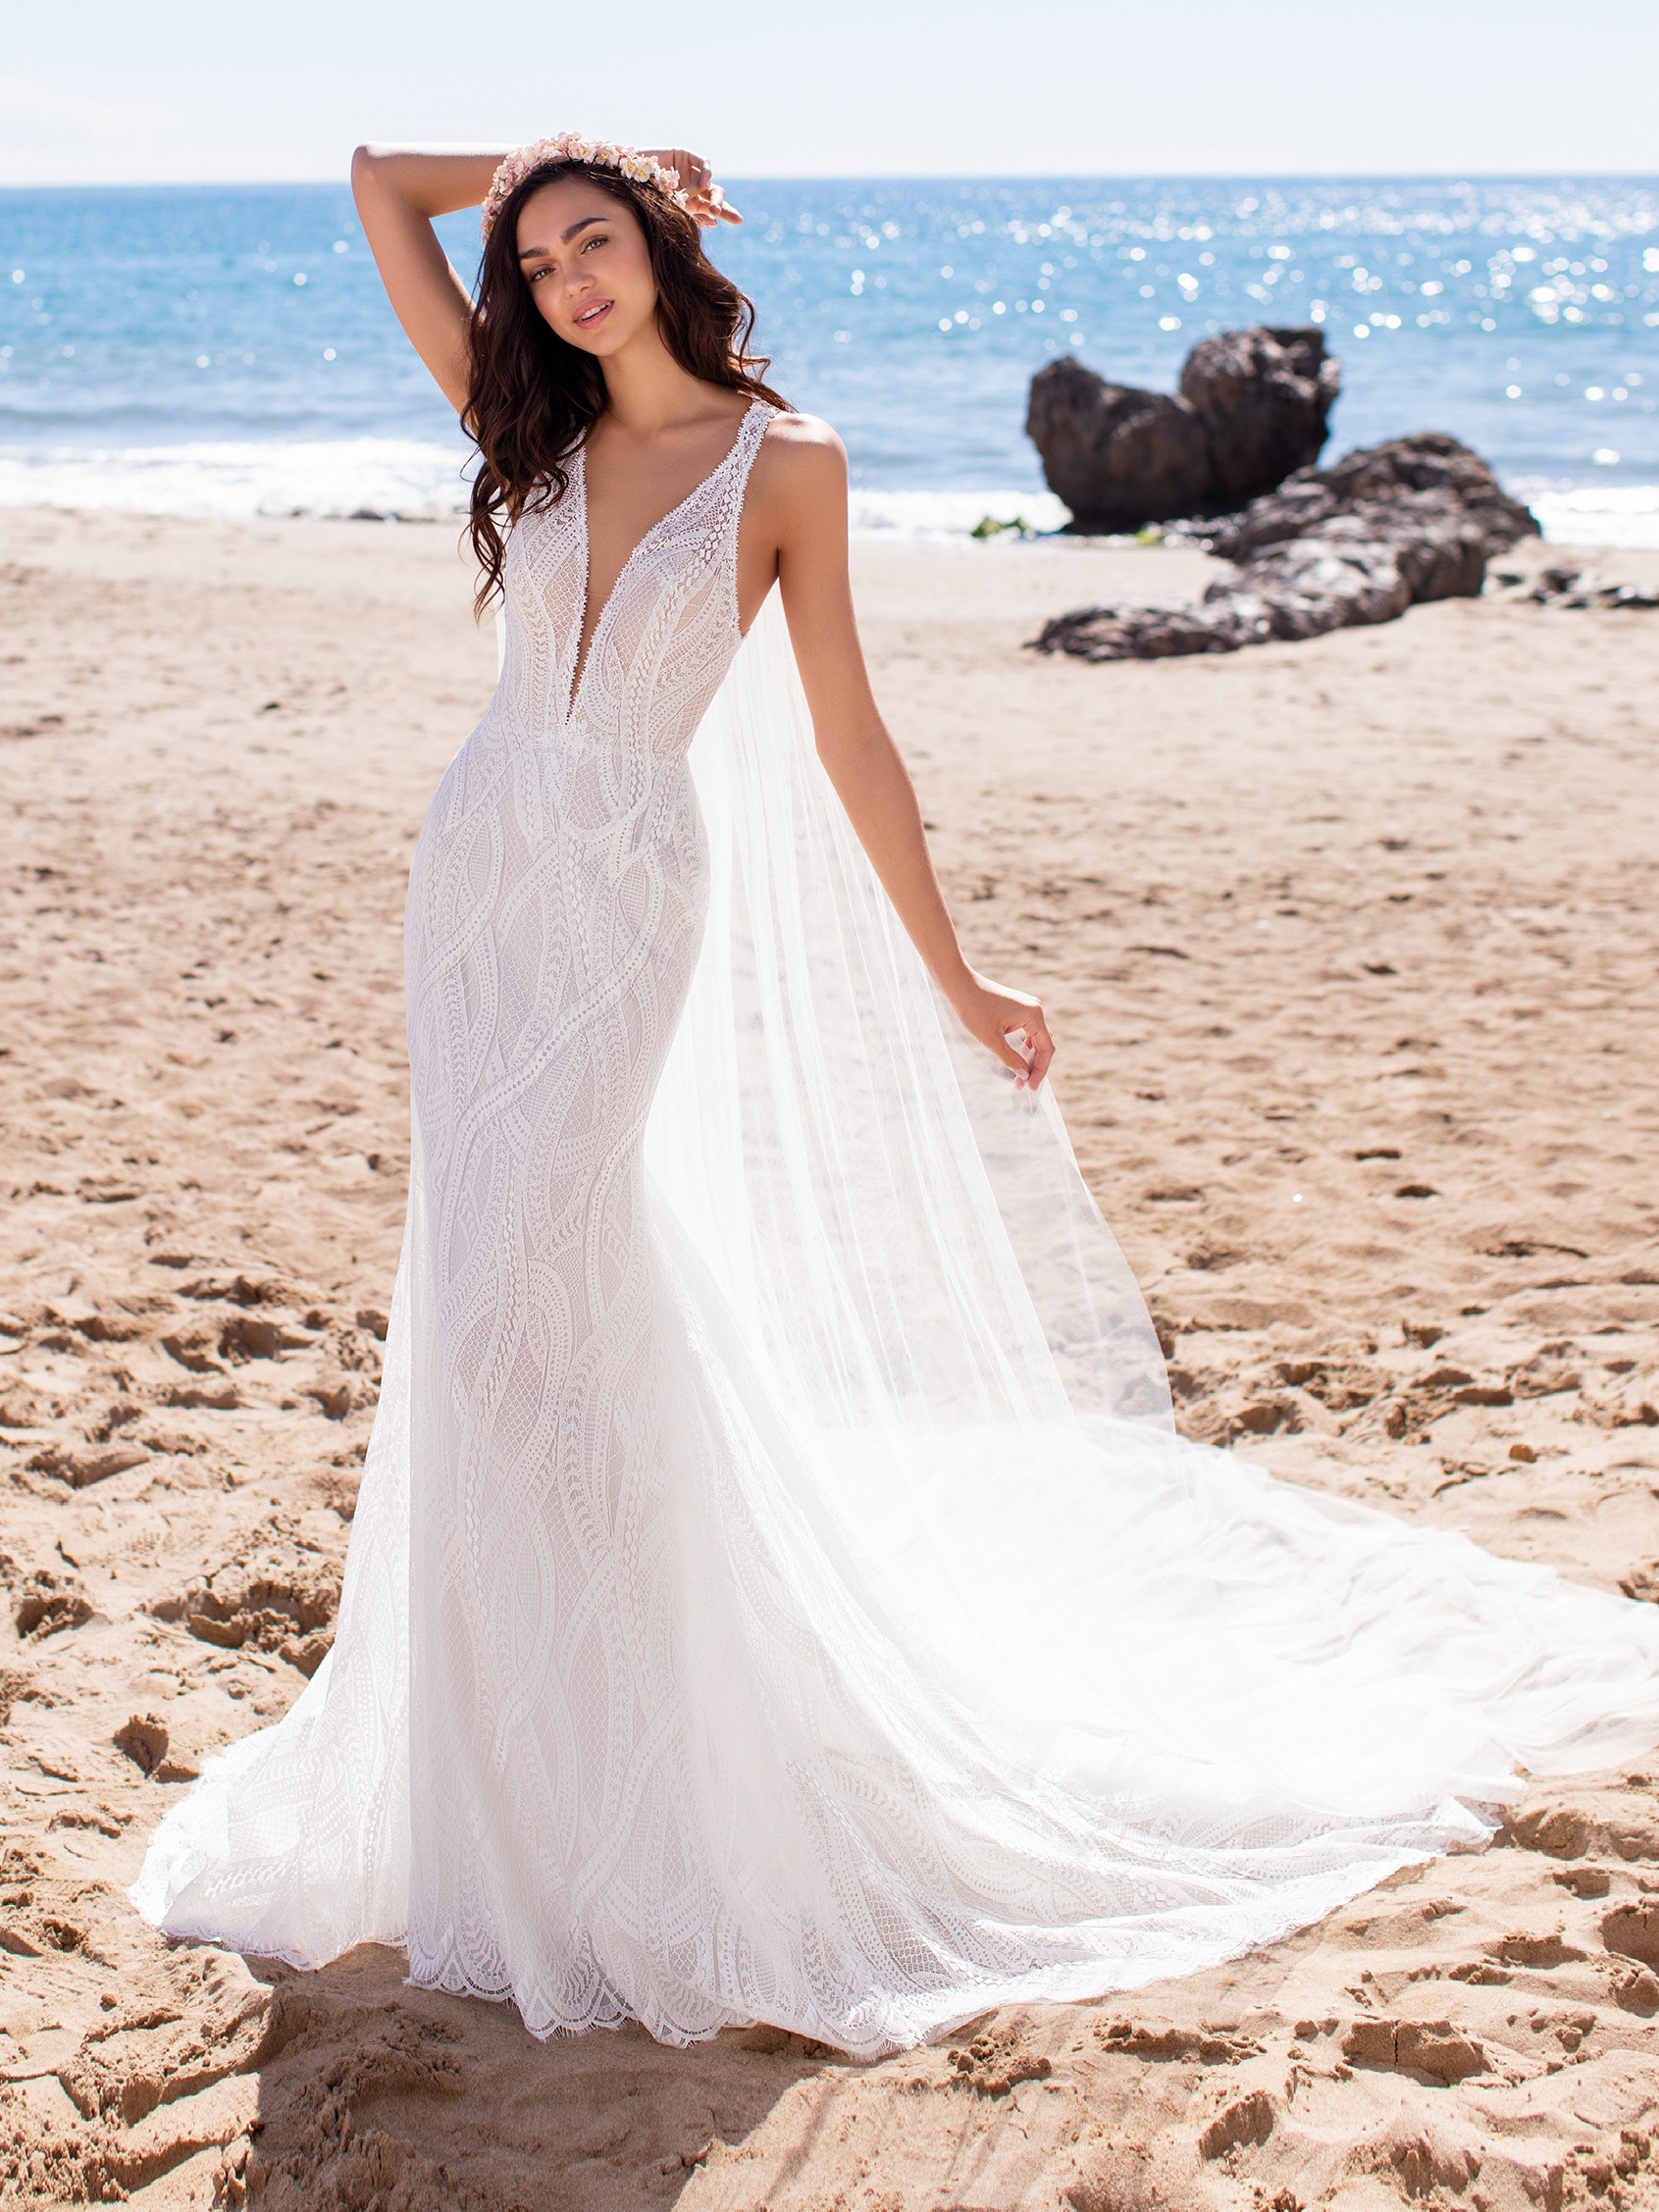 the-best-gowns-for-beach-weddings